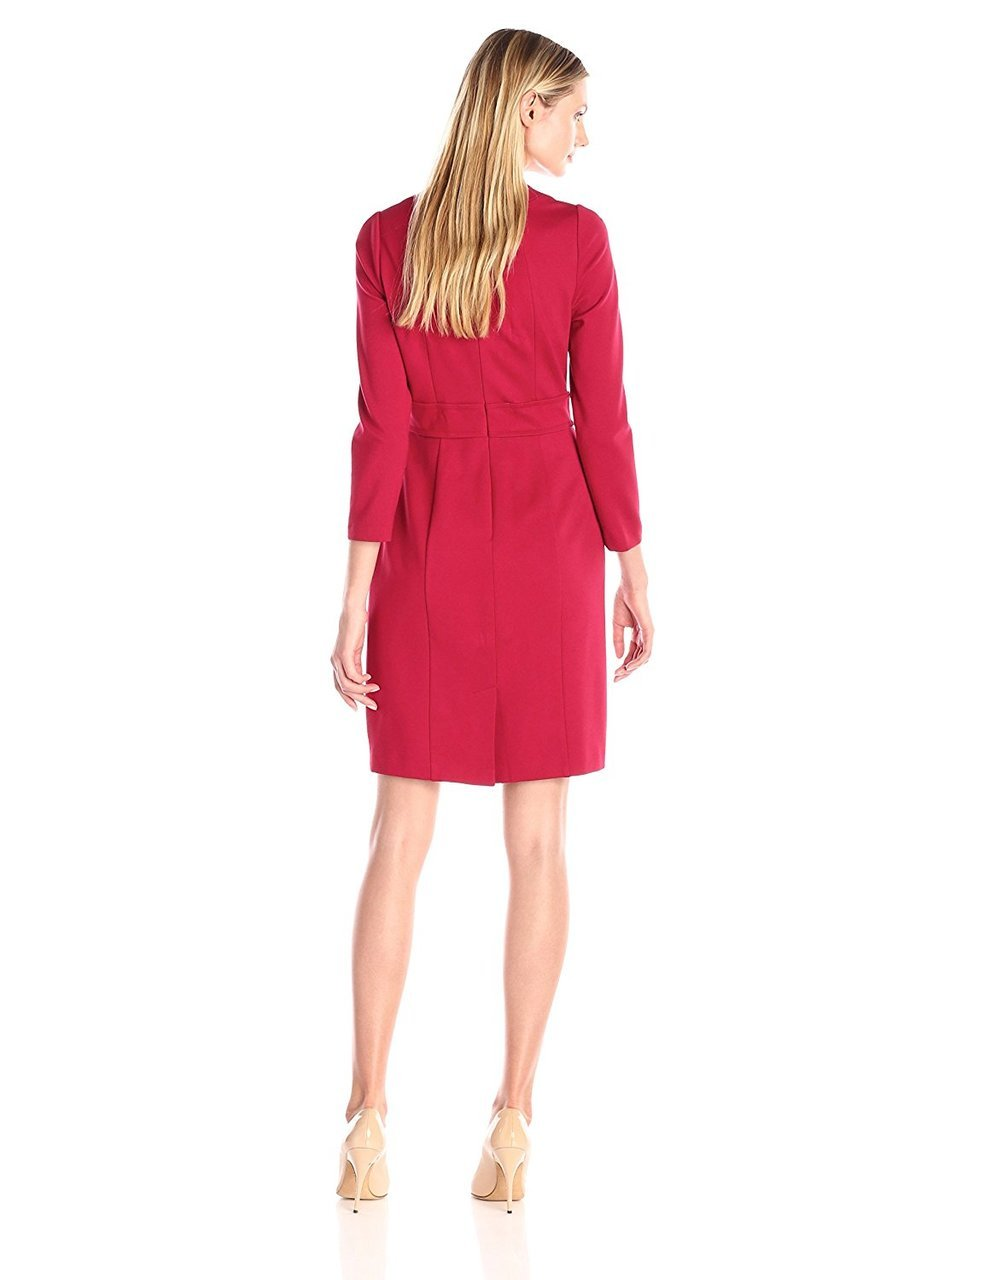 Adrianna Papell - Square Neck Ponte Dress 15246420 in Red